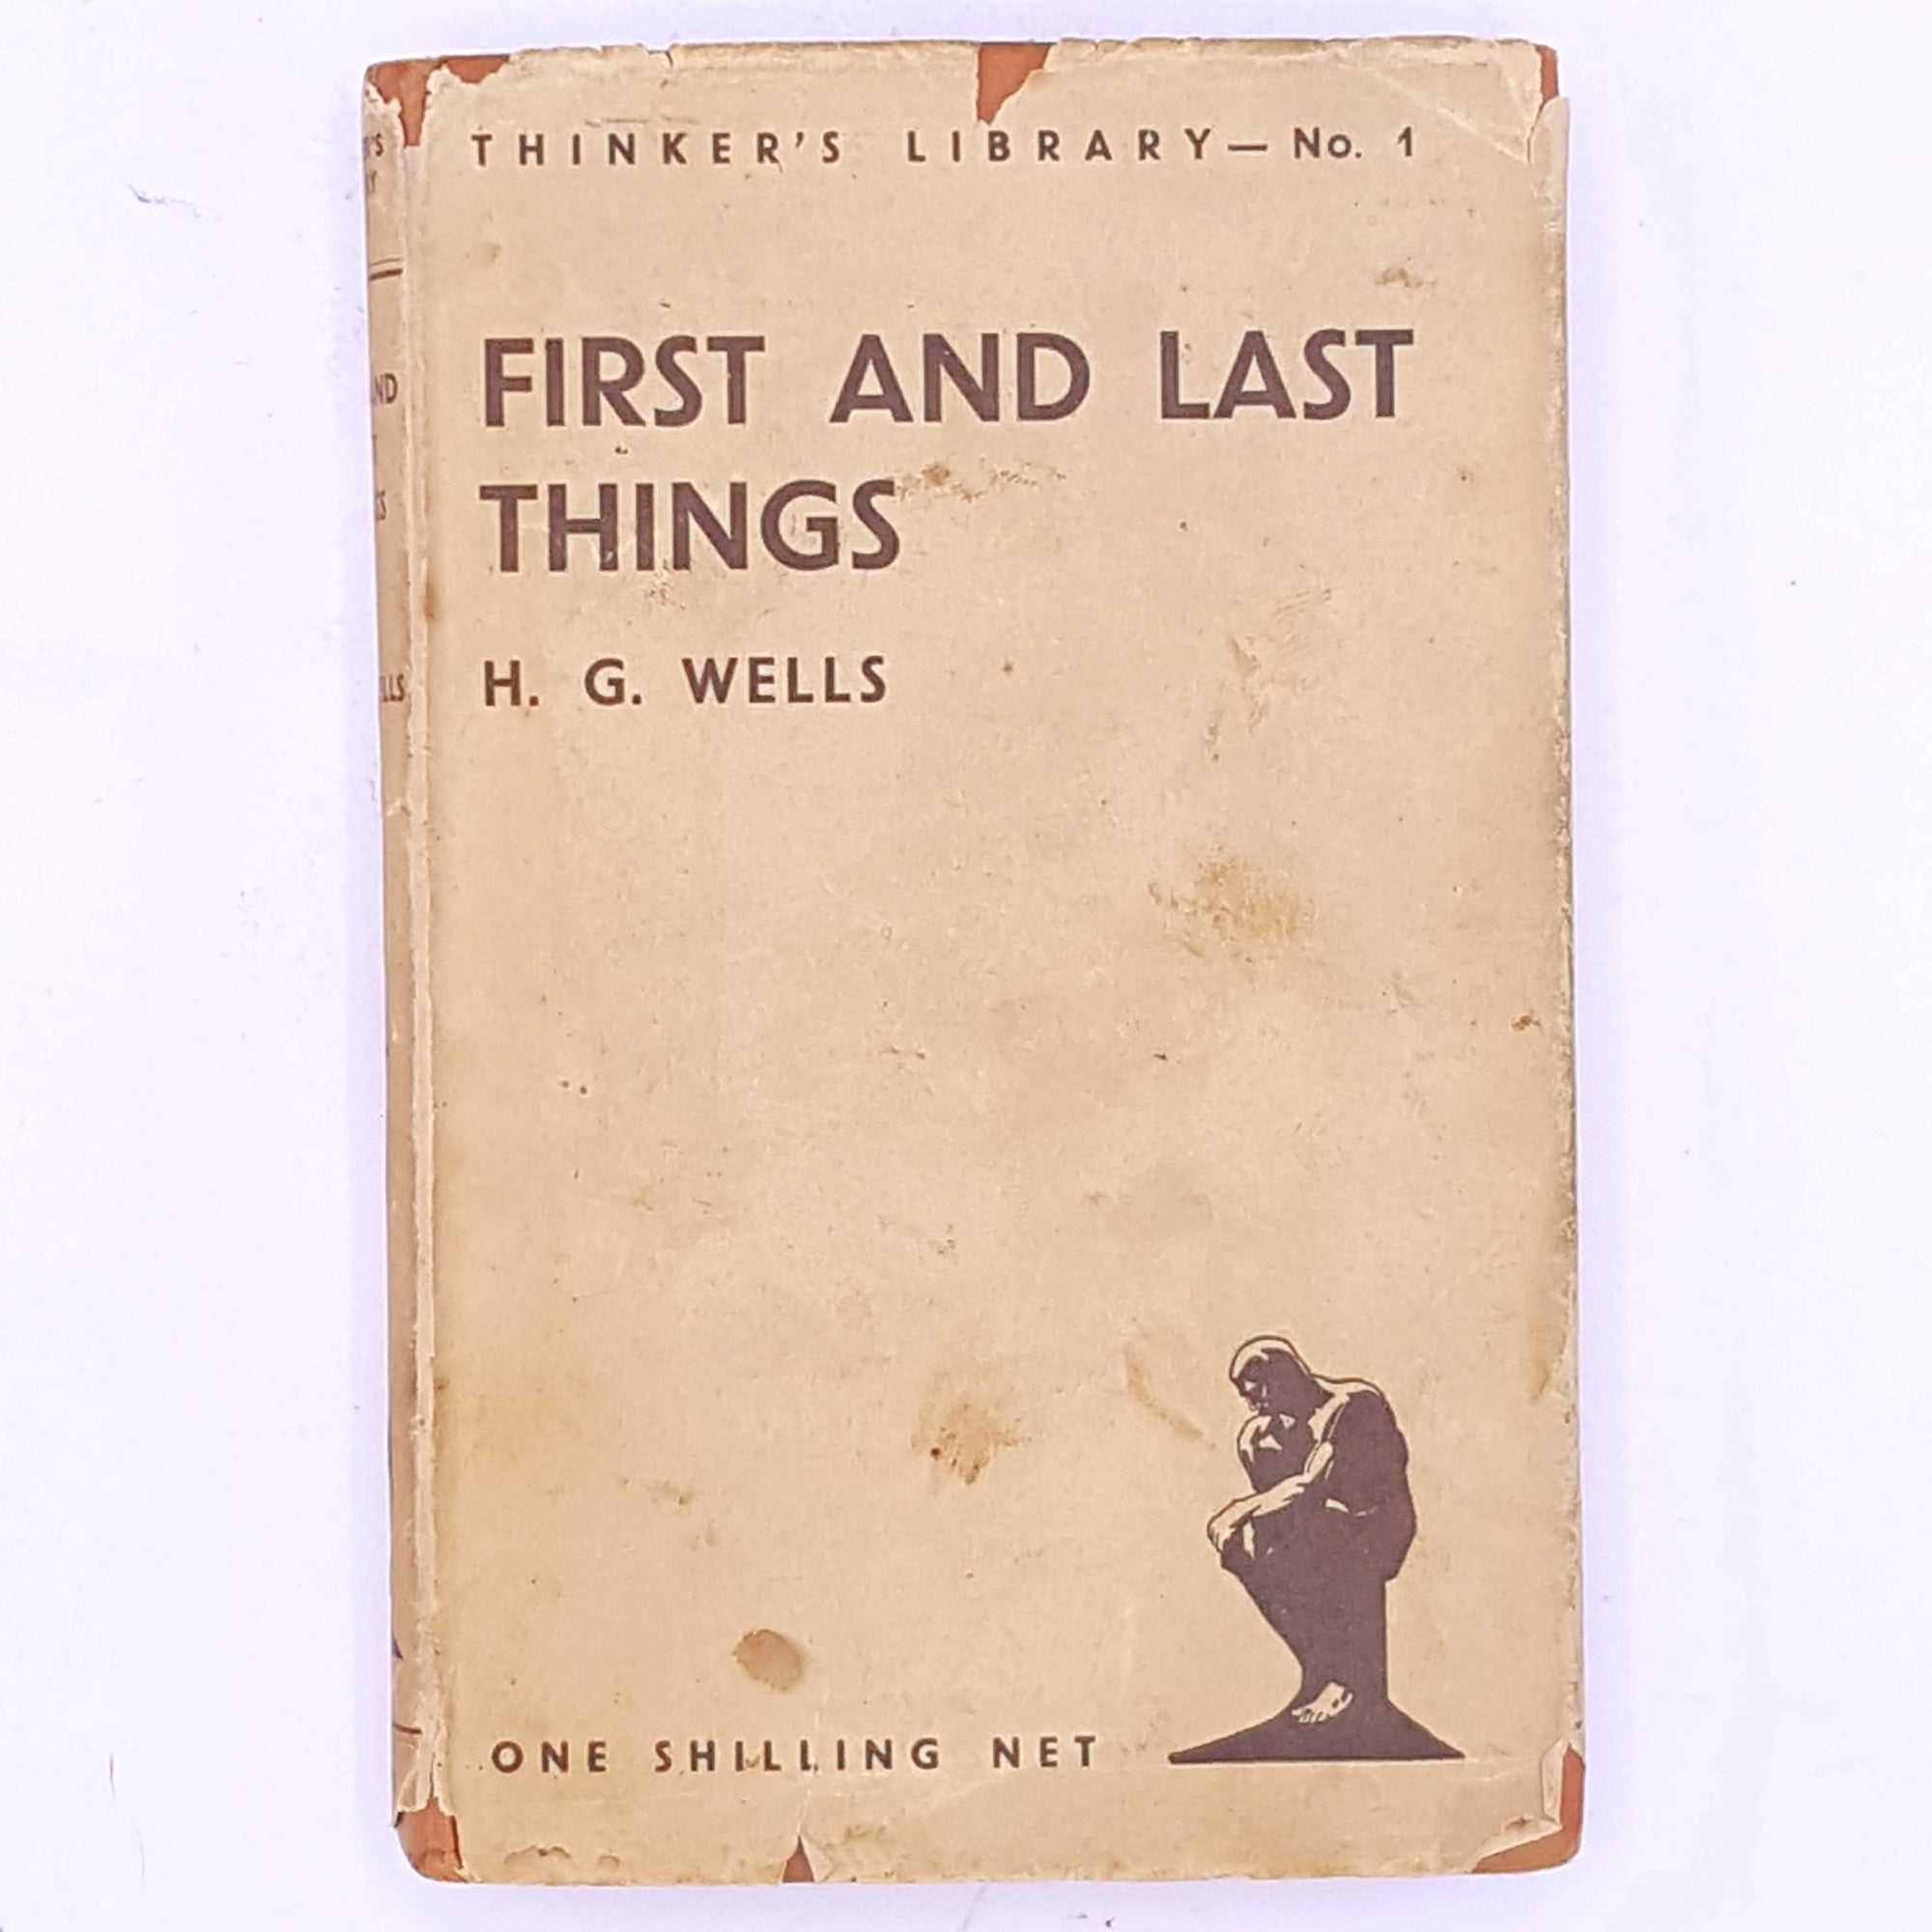 H.G. Wells, First and Last Things